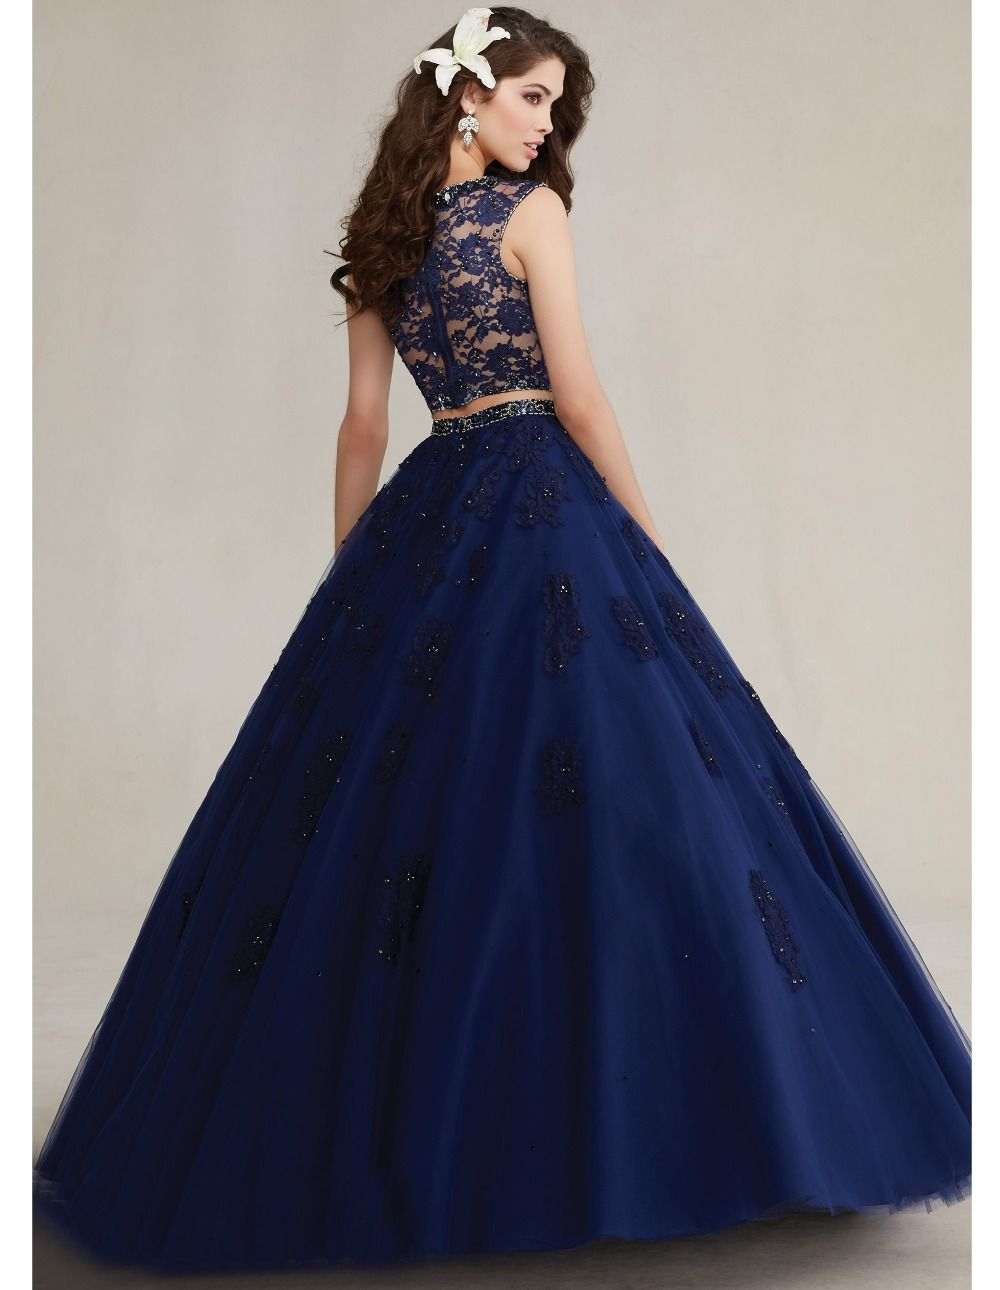 Newest crystal lace royal blue sweet 16 dresses two pieces quinceanera  dresses blue masquerade party debut ball gowns YK 061 ac504e245141